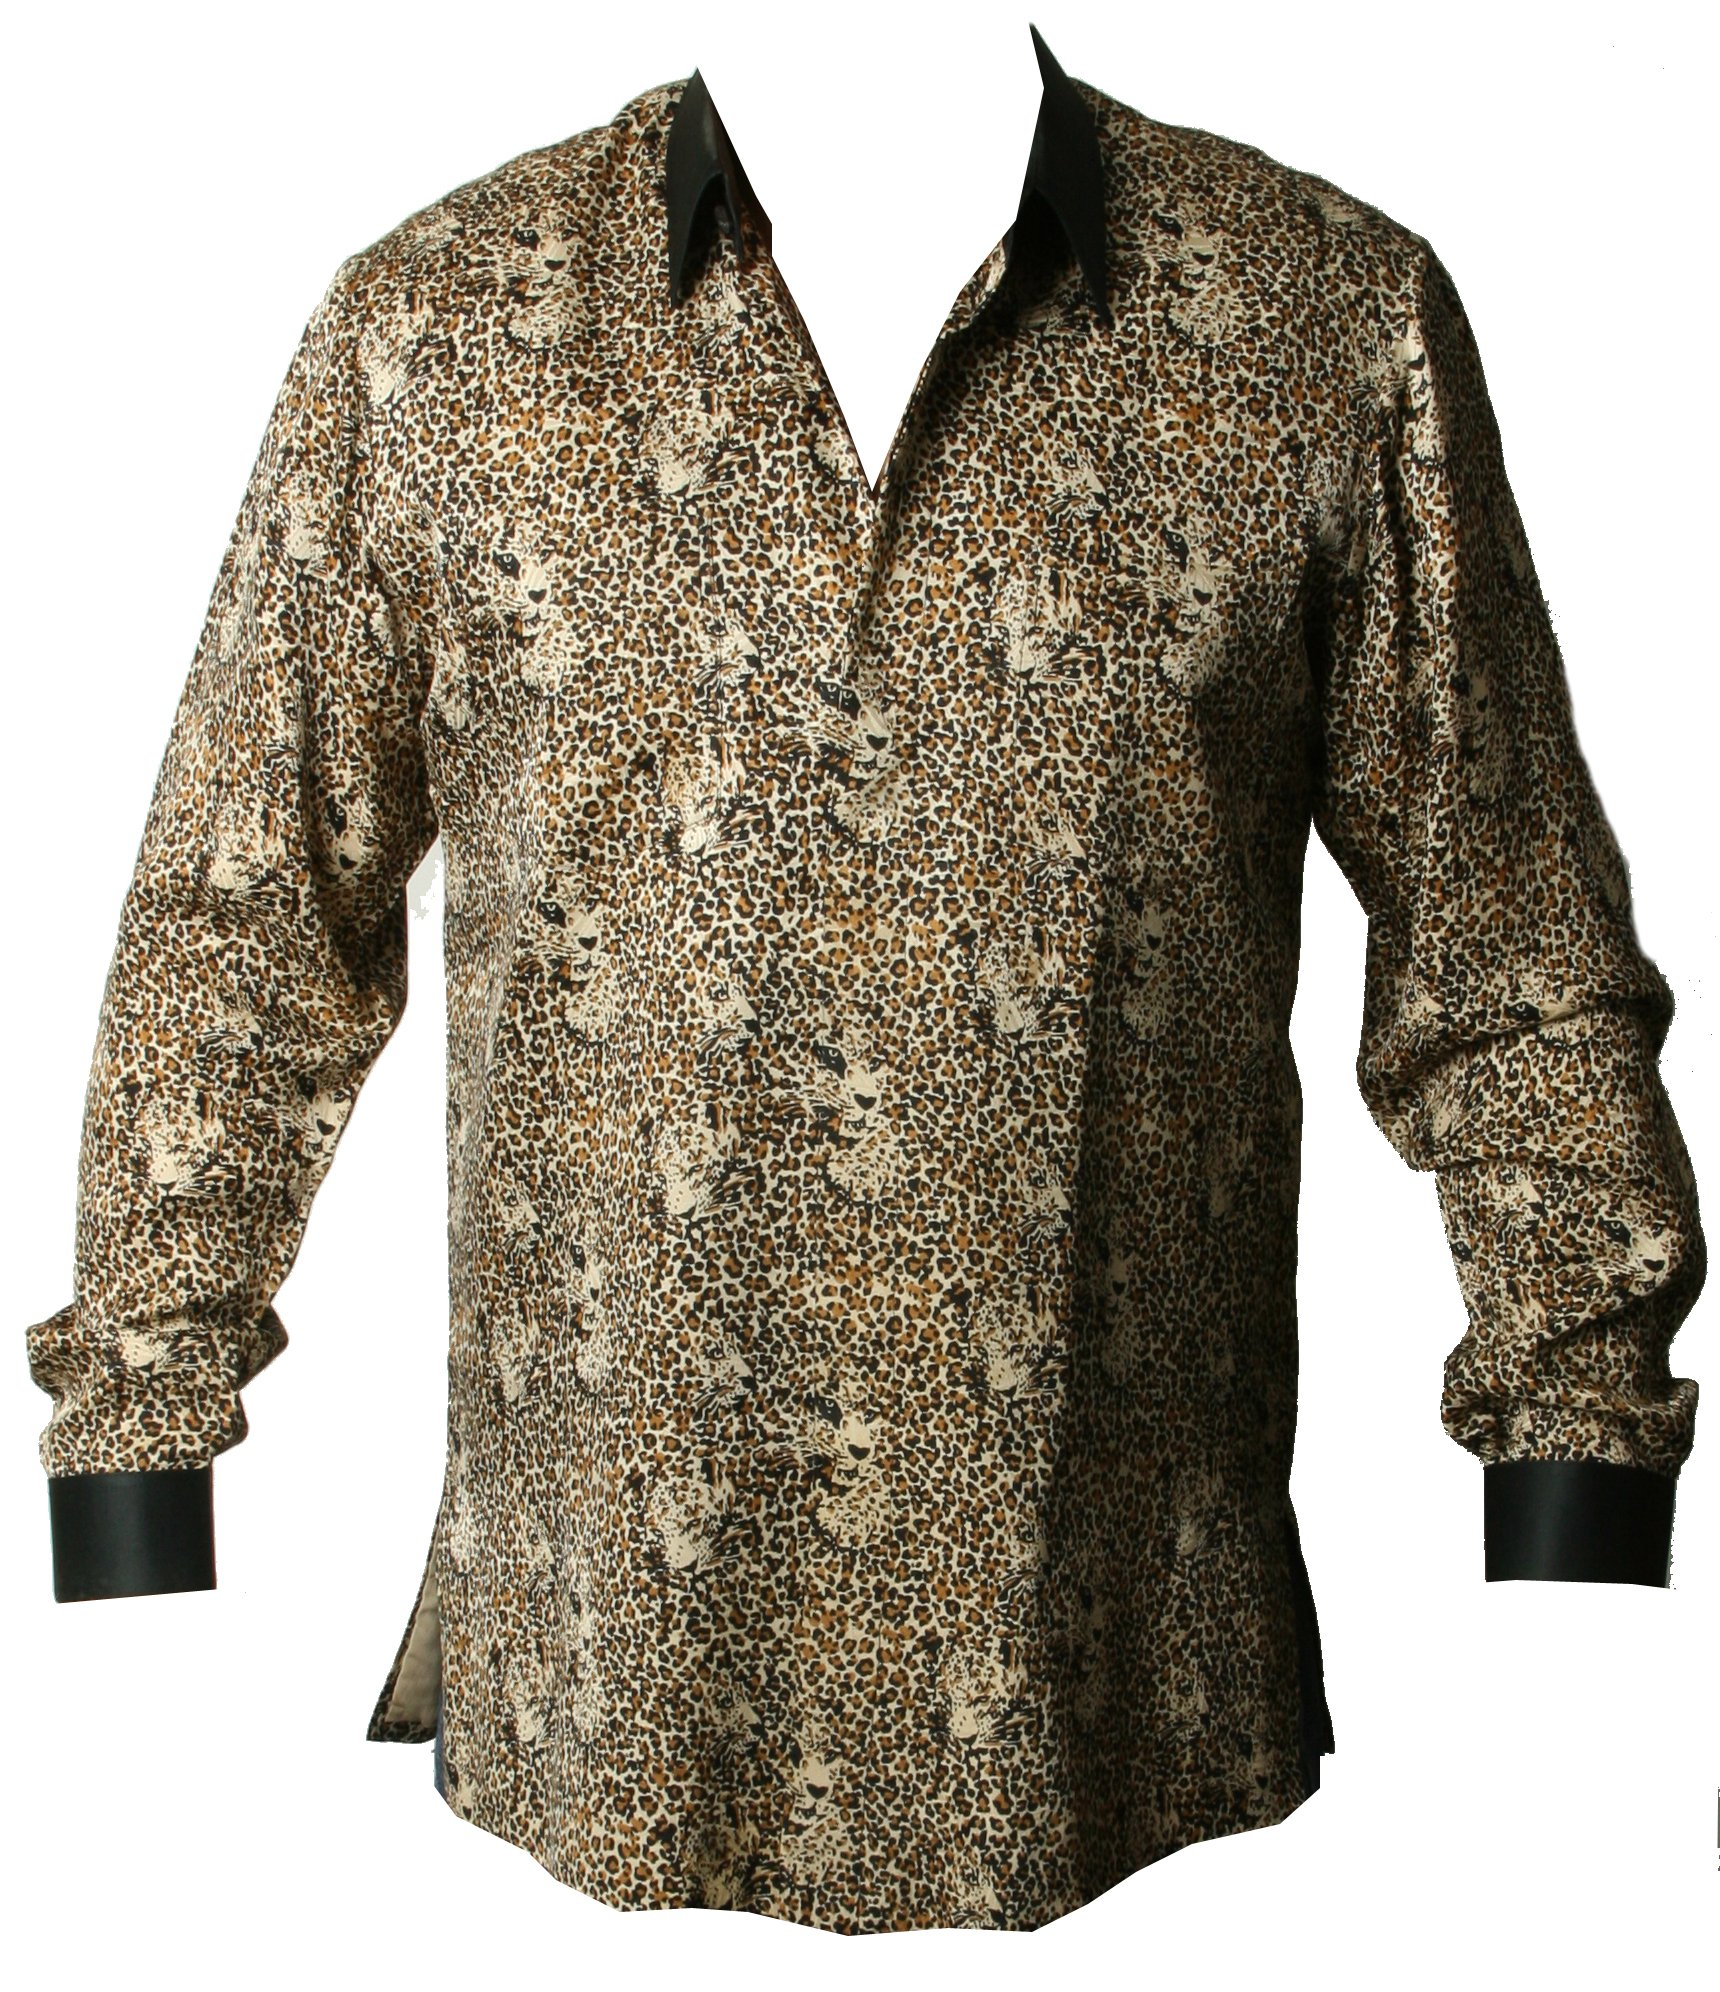 A shirt that was custom made for Nelson Mandela often referred to as a 'Madiba Shirt'.JPG